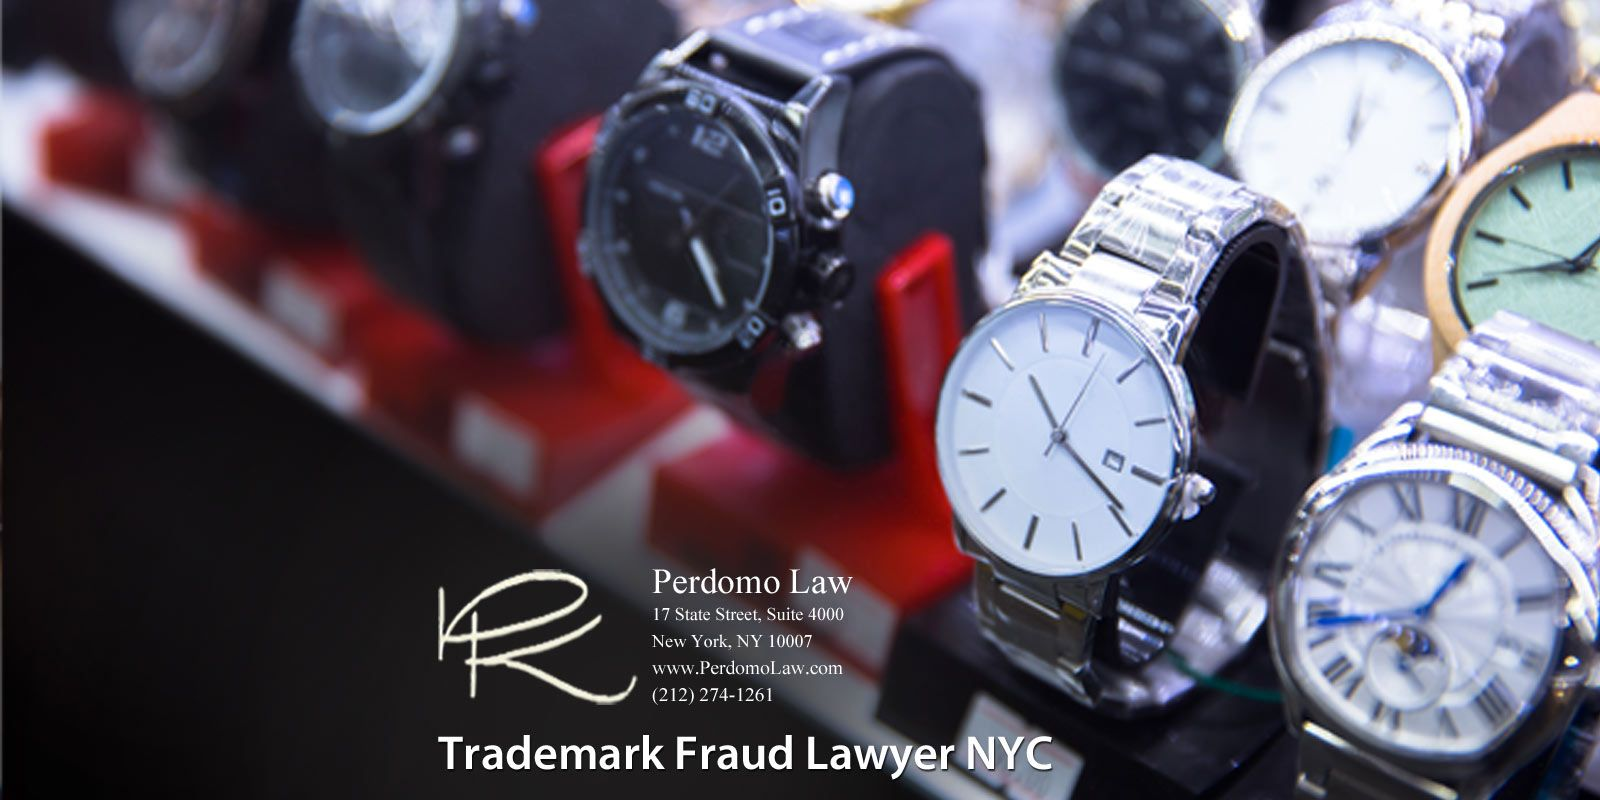 Obtaining a trademark license from the United States